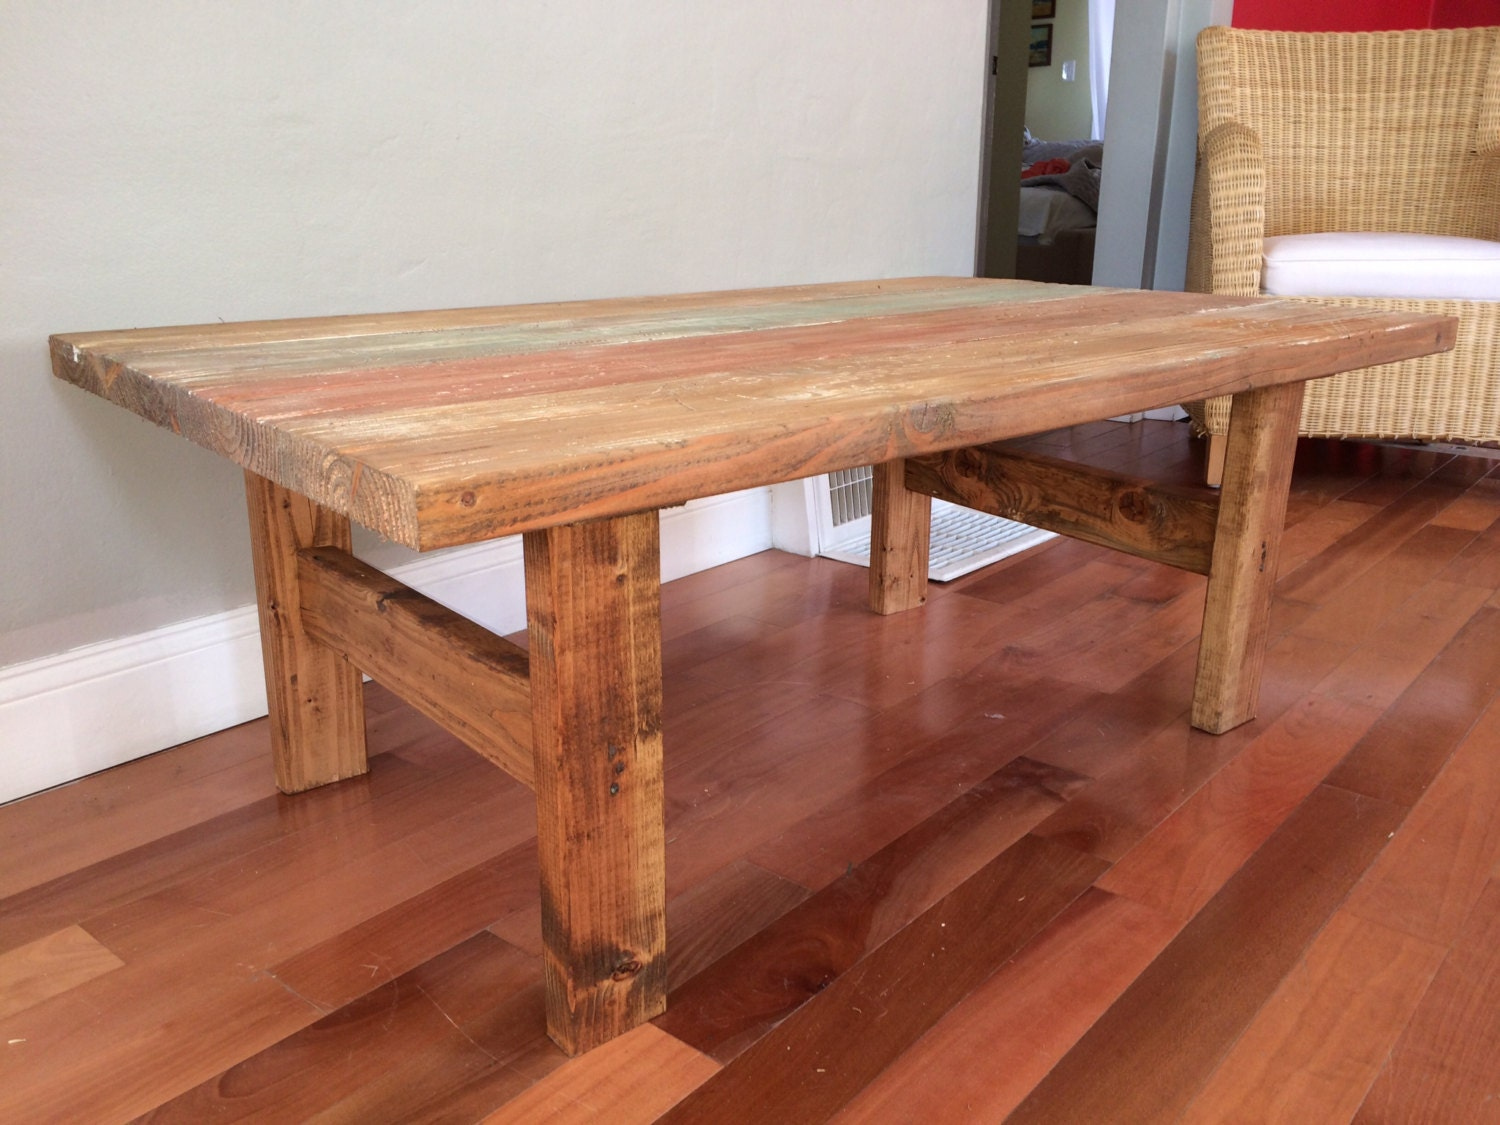 Handmade Wood Coffee Table By Eclectichomeliving On Etsy